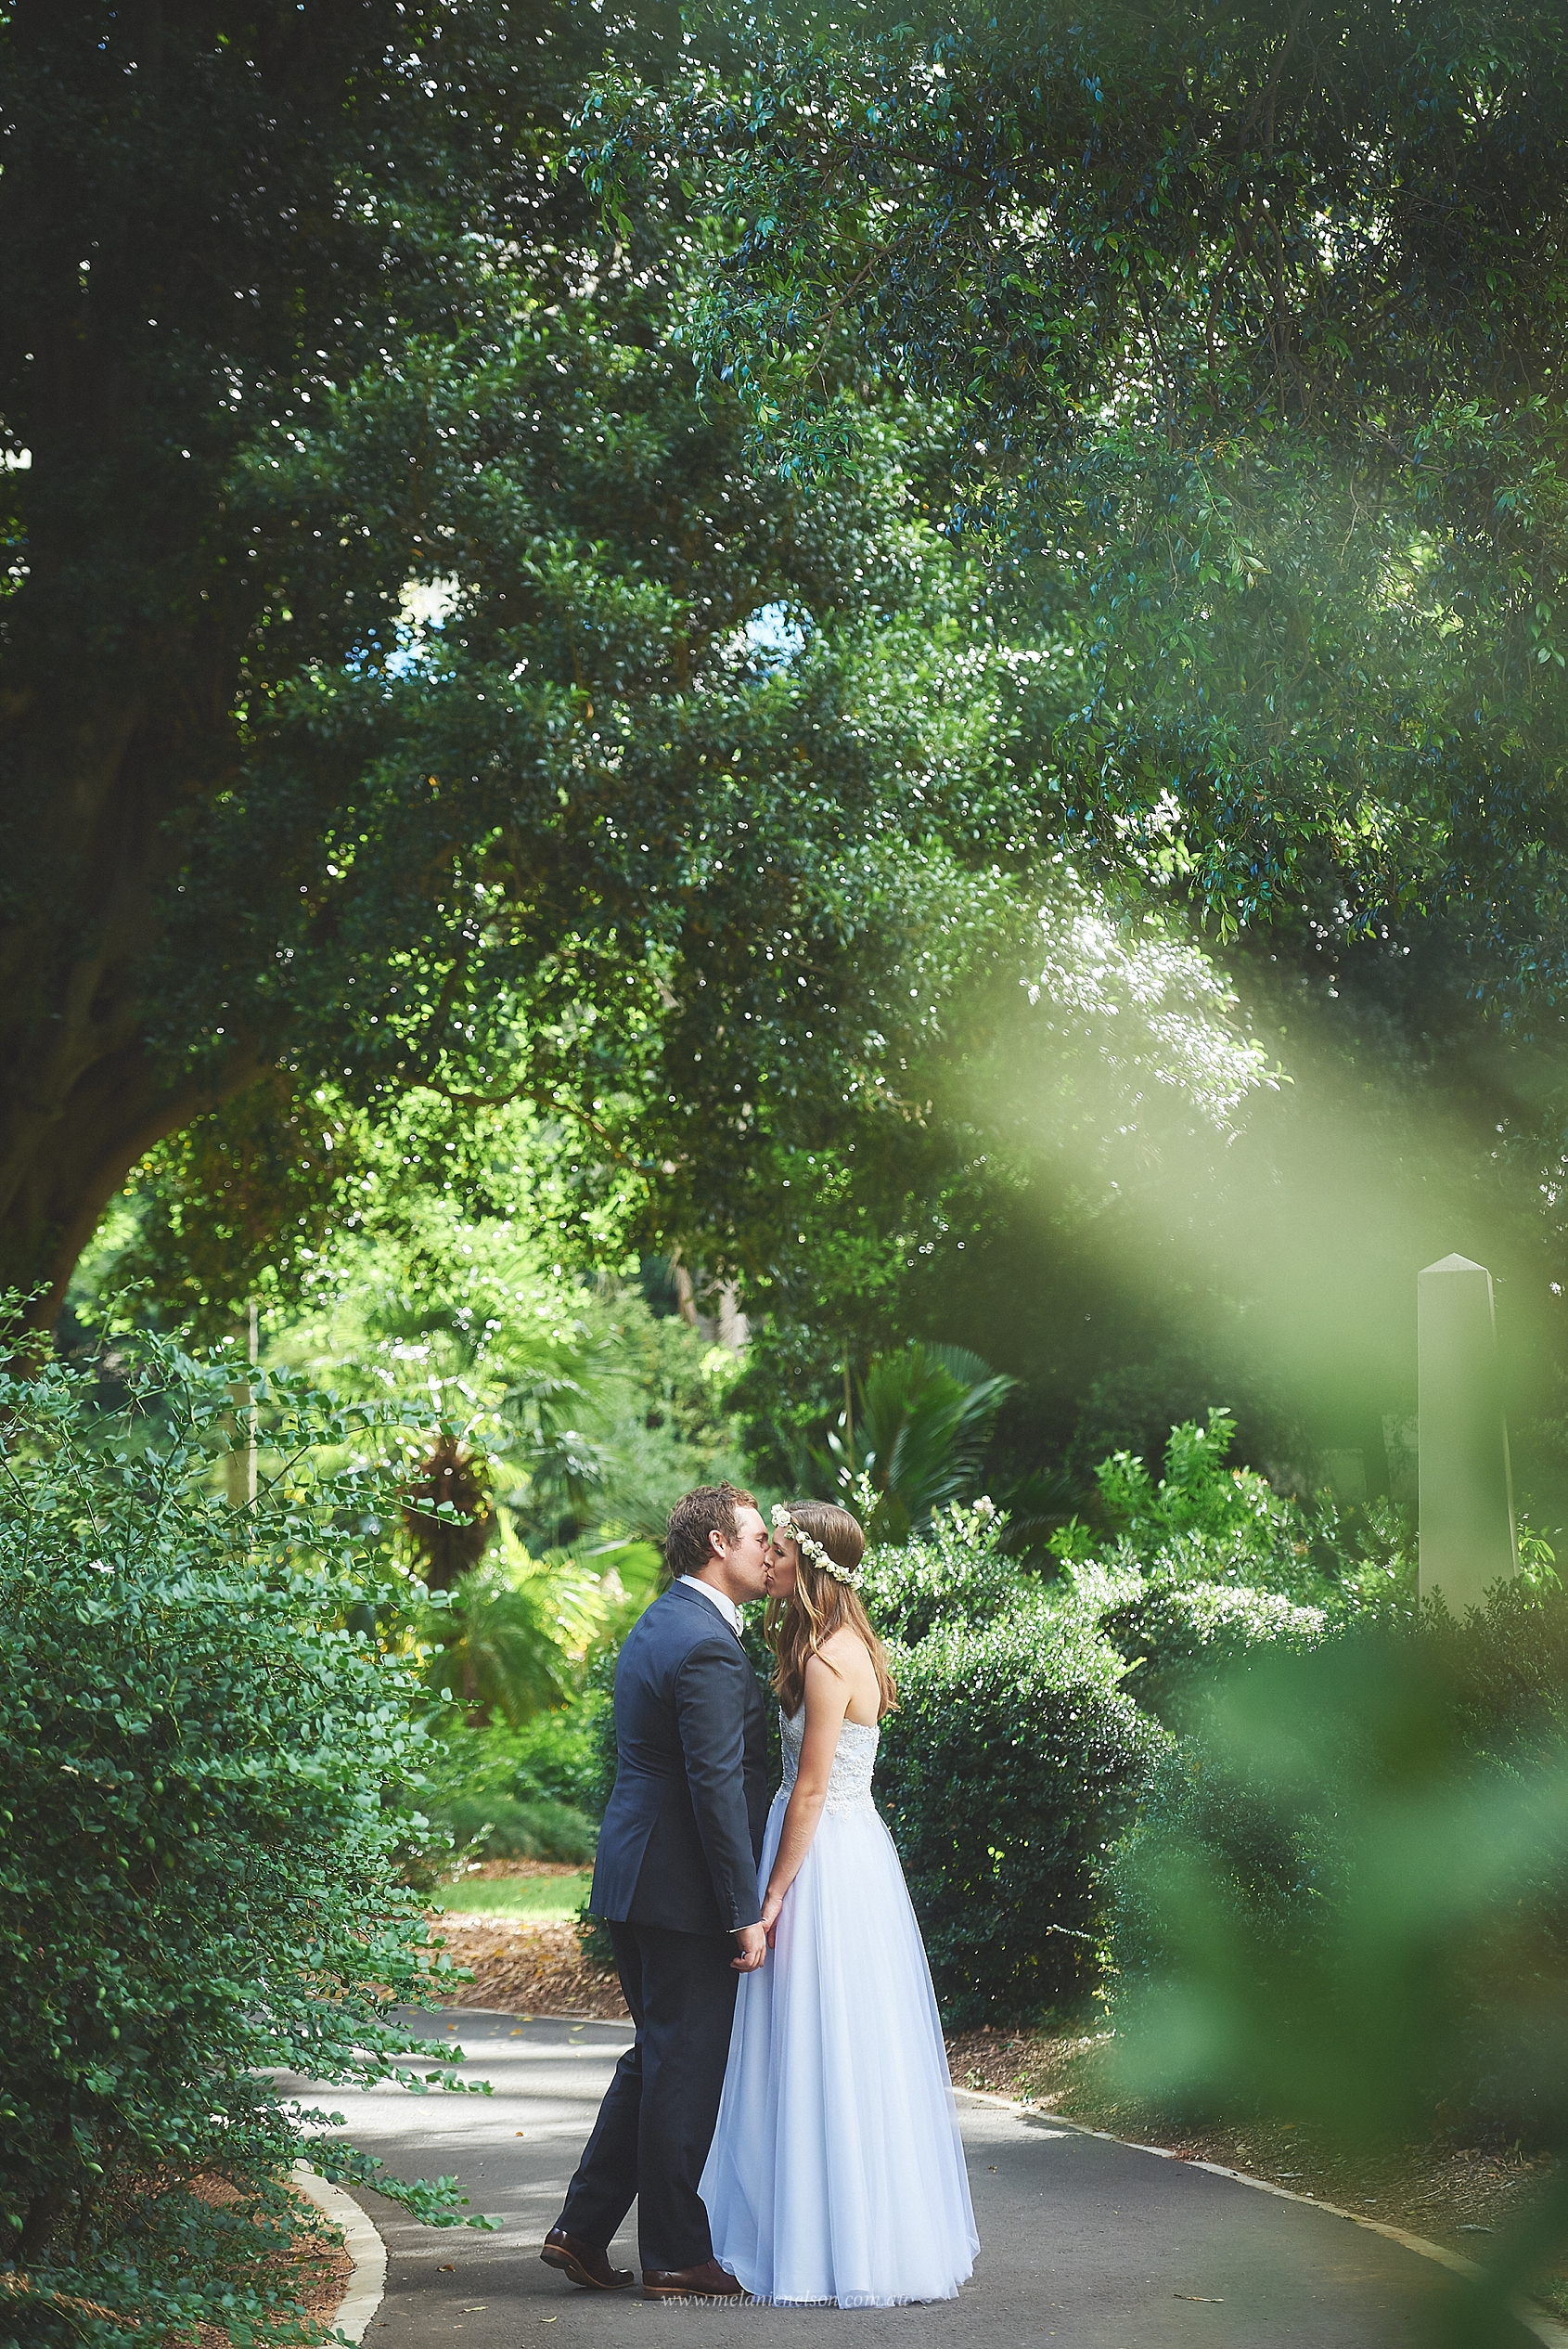 adelaide_botanic_gardens_wedding_photography13.jpg